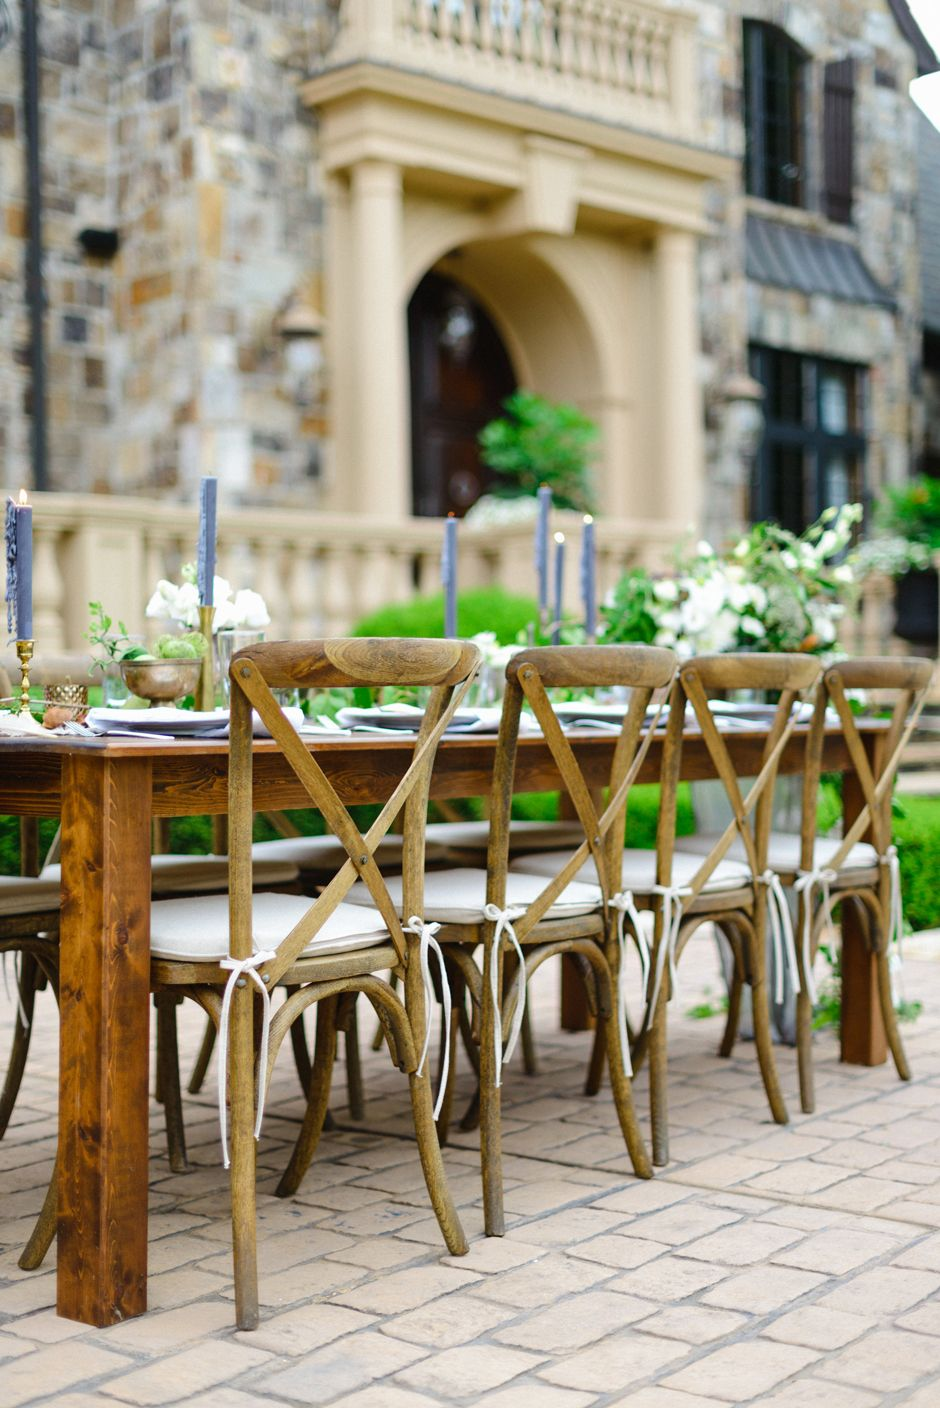 Table And Chair Hire Patio Bar Chairs Tables Crossback Vineyard Rental In Atlanta Athens Lake Oconee Georgia Wedding Rentals